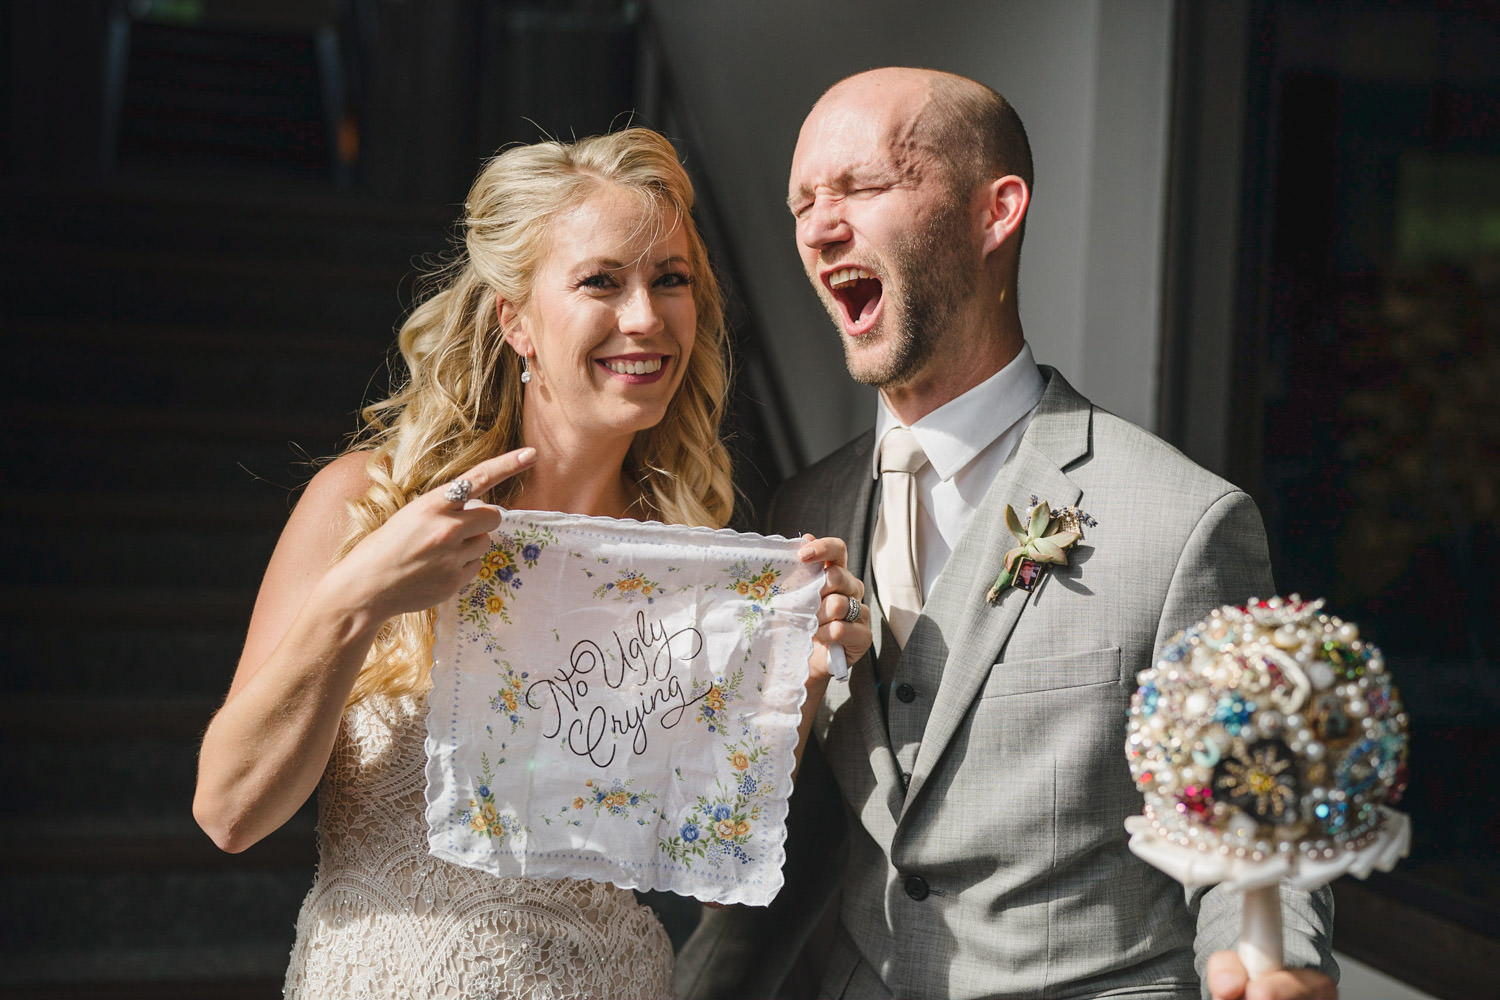 Alta Lodge wedding bride with no ugly crying hanker-chief photo